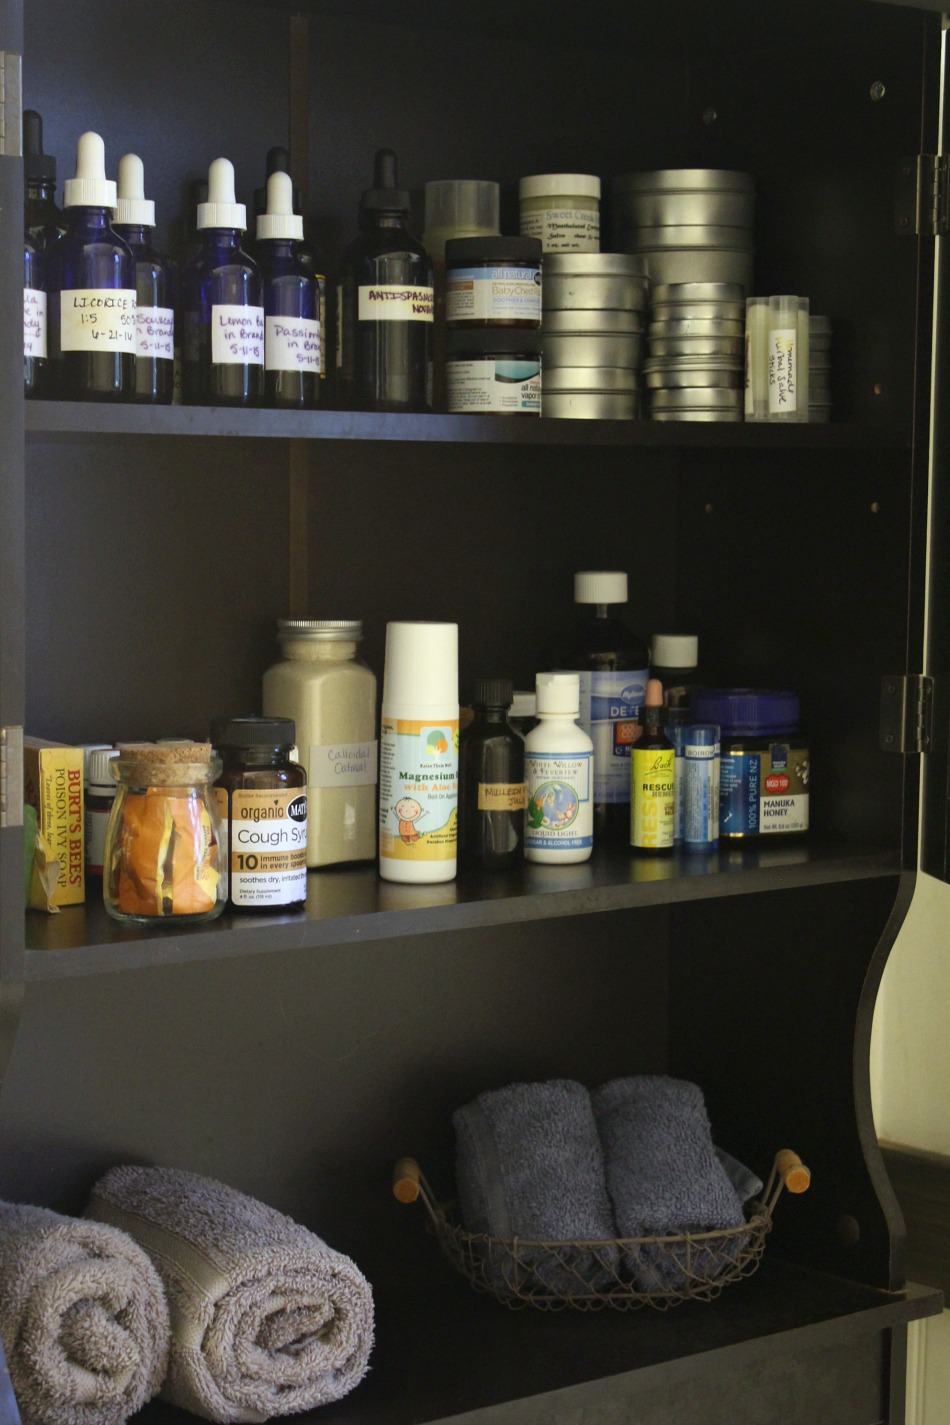 A Sneak Peek Inside My Natural Medicine Cabinet   Growing Up Herbal   Come see what natural remedies I keep stocked in my home for first aid situations and other everyday ailments.